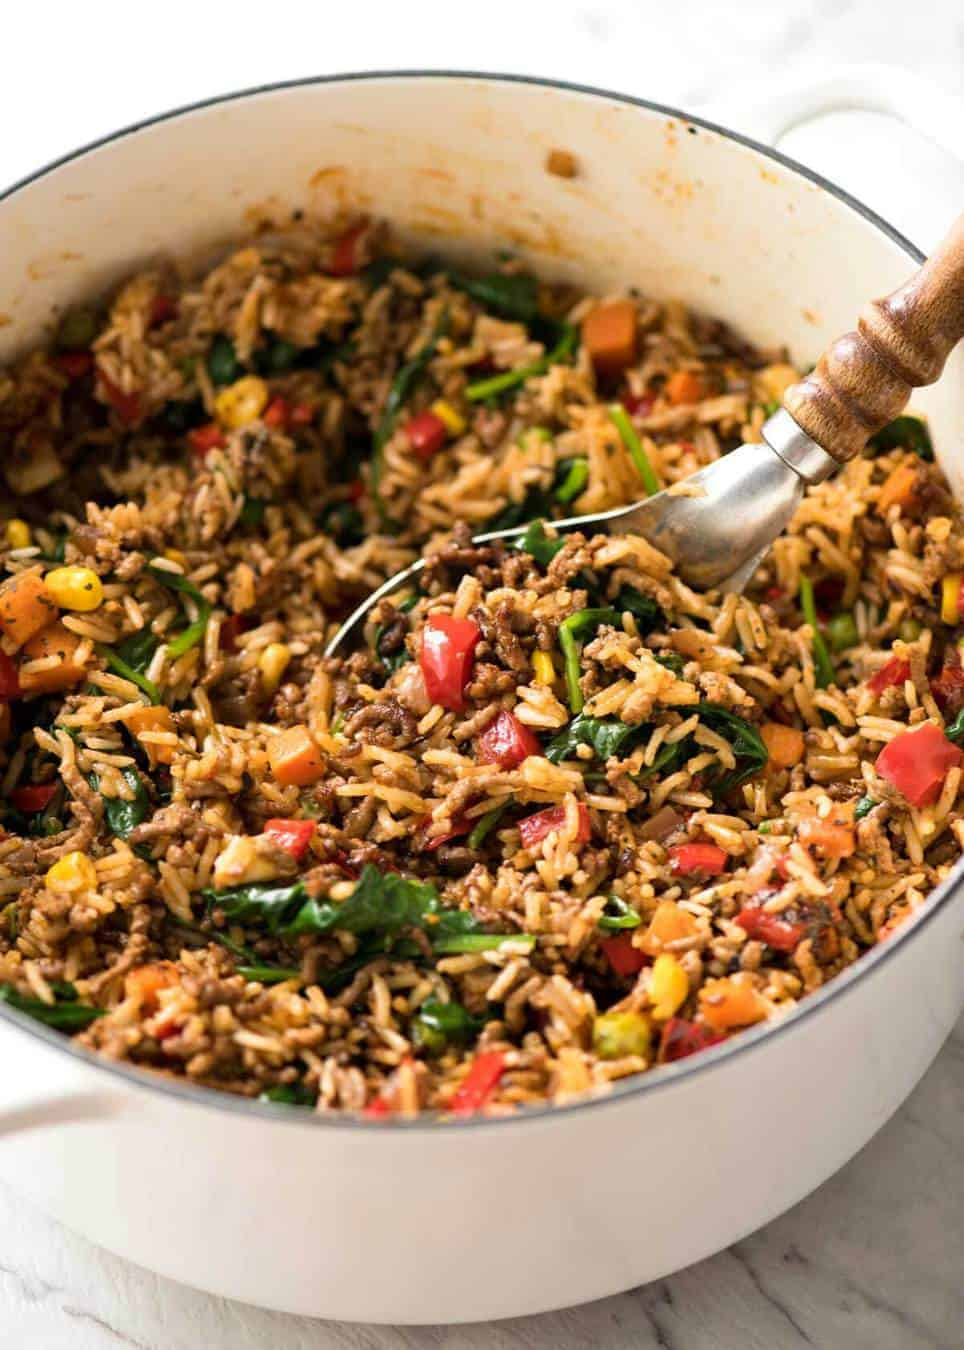 A quick, fabulous midweek meal - this ground Beef and Rice is made by browning ground beef, then cooking it with flavoured rice and loads of veggies. Irresistibly delicious! www.recipetineats.com